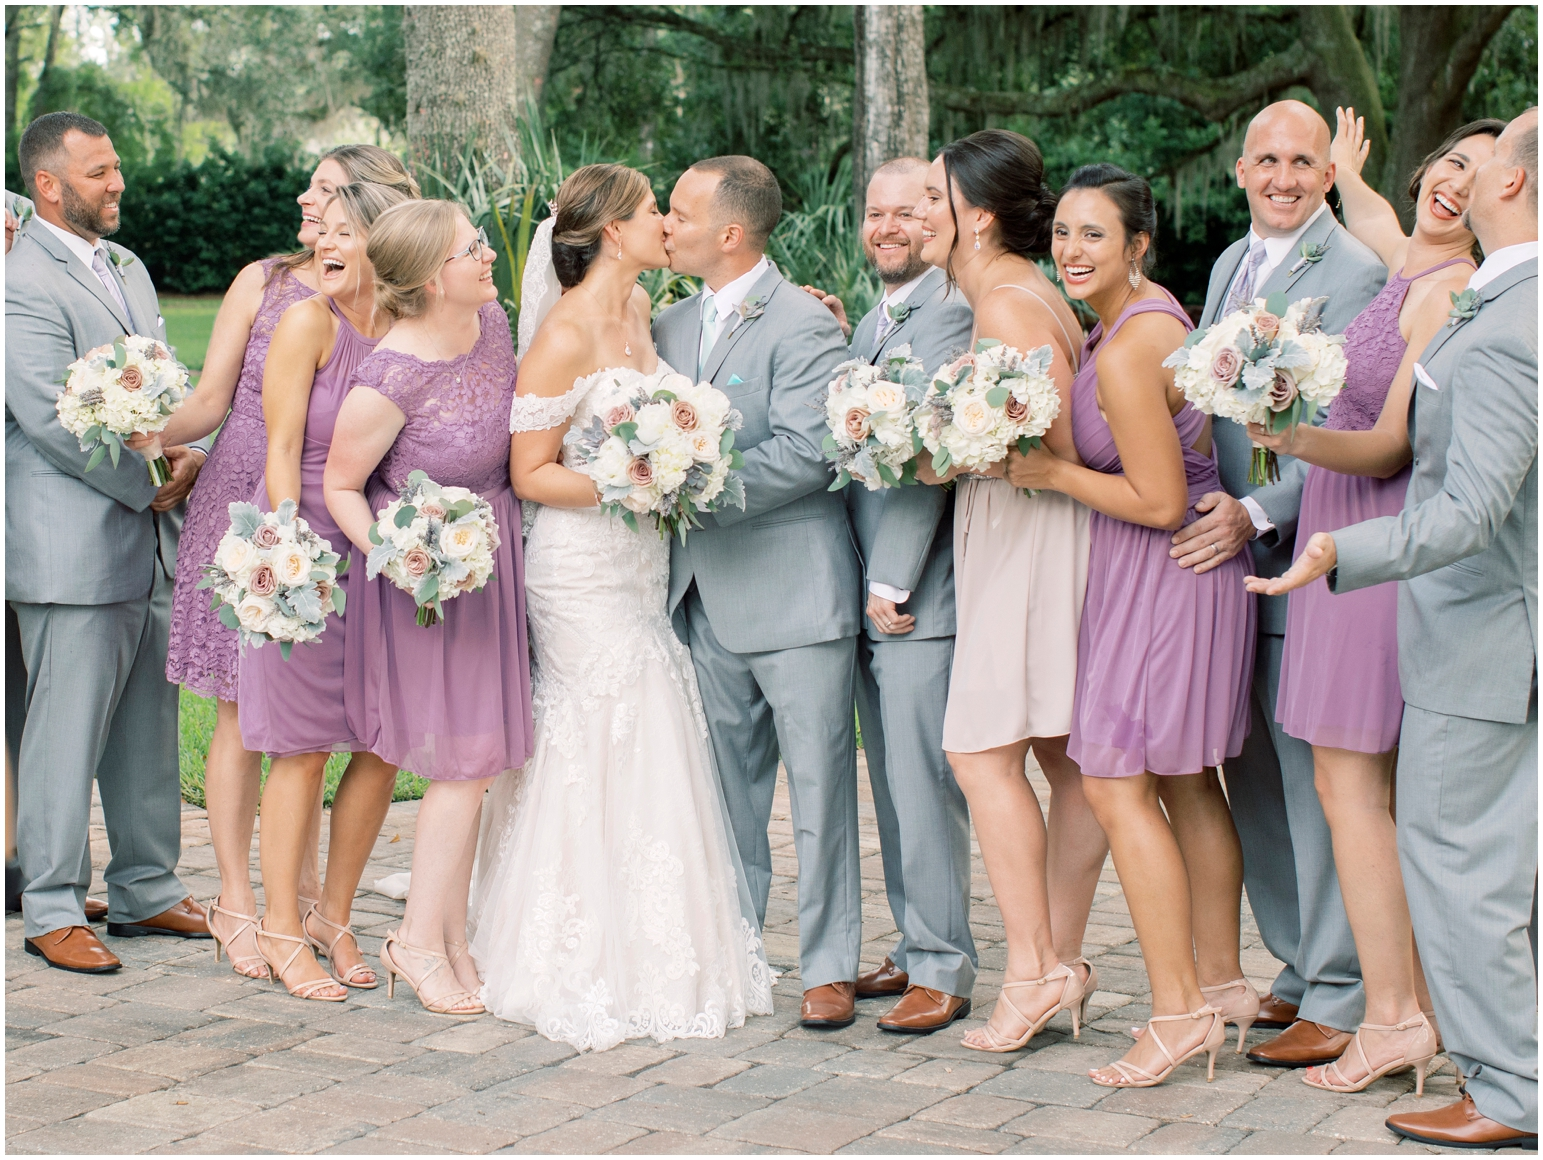 Lisa Silva Photography- Jacksonville, St Augustine, Fernandina Beach, Amelia Island, Ponte Vedra Beach, North East Florida Fine Art Film Photographer- Ashley and Shawn's wedding at bowing oaks plantation_0075.jpg